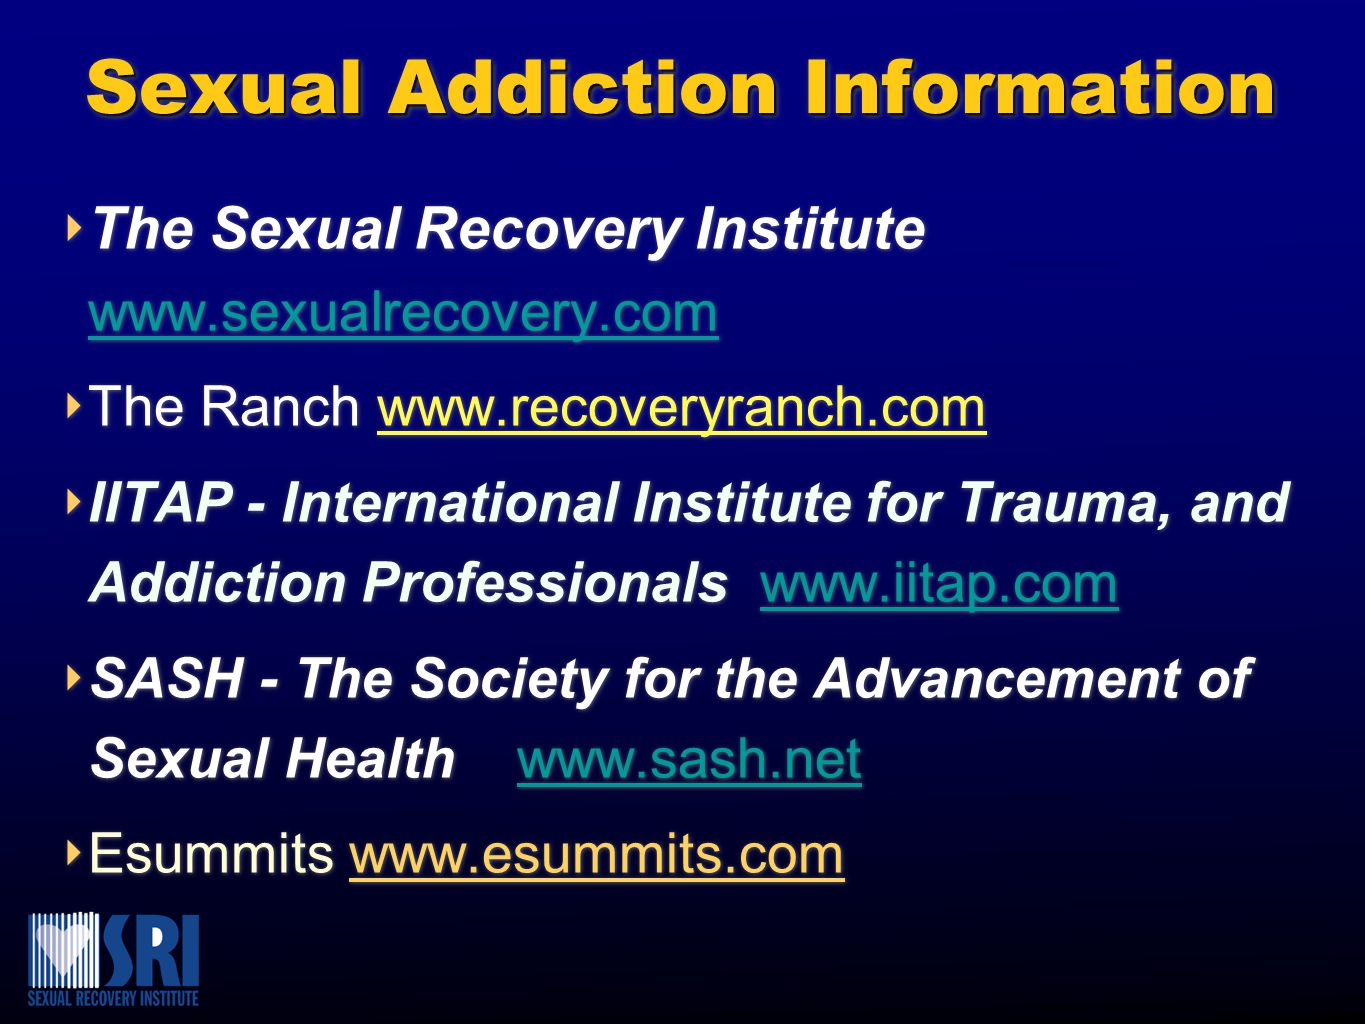 Sexual Addiction Information